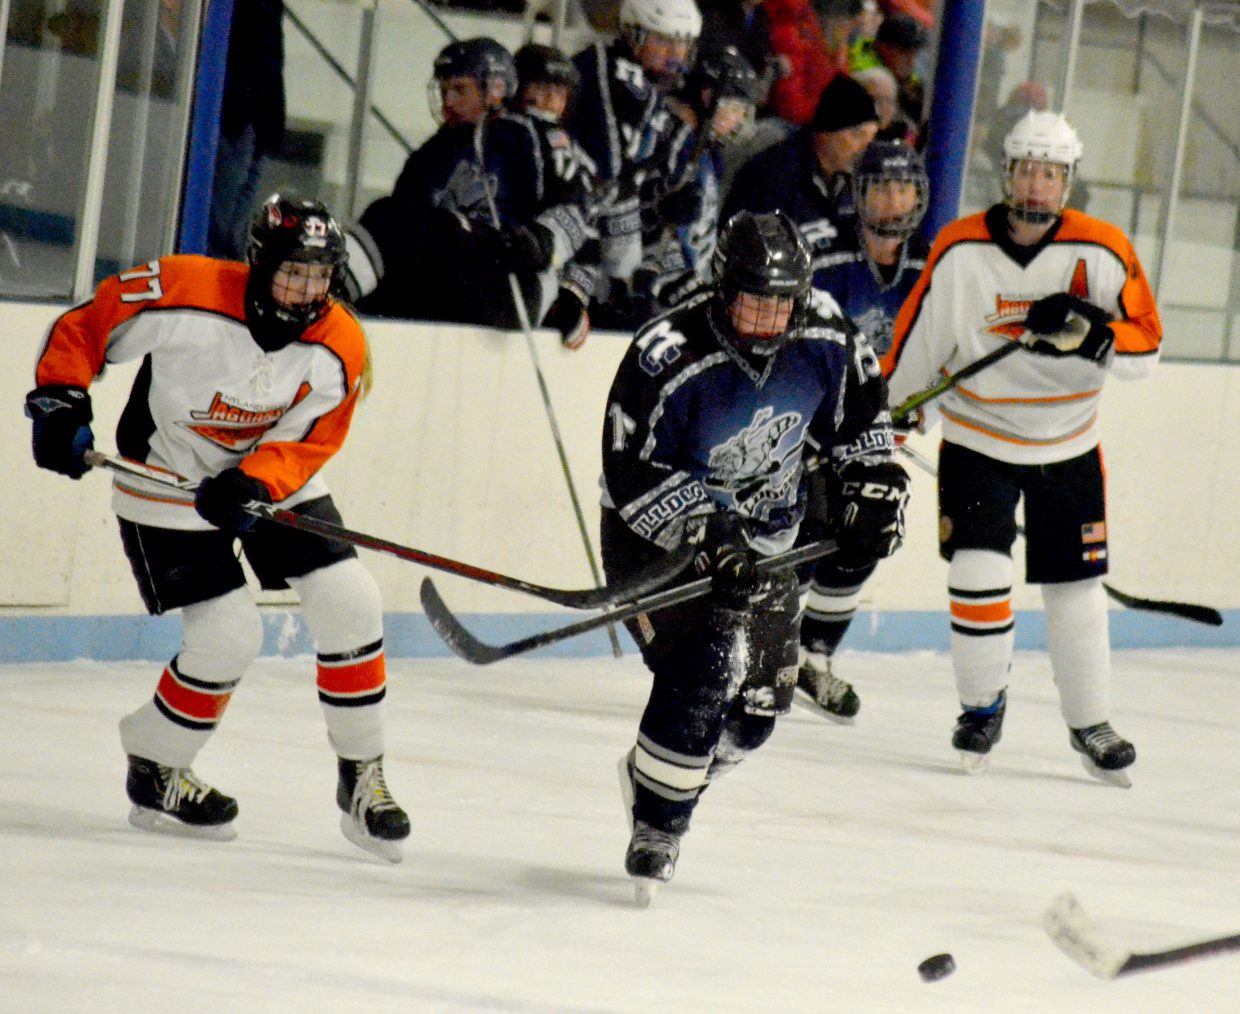 Corey Scranton pursues the puck during Moffat County Bulldogs' game against Hyland Hills.